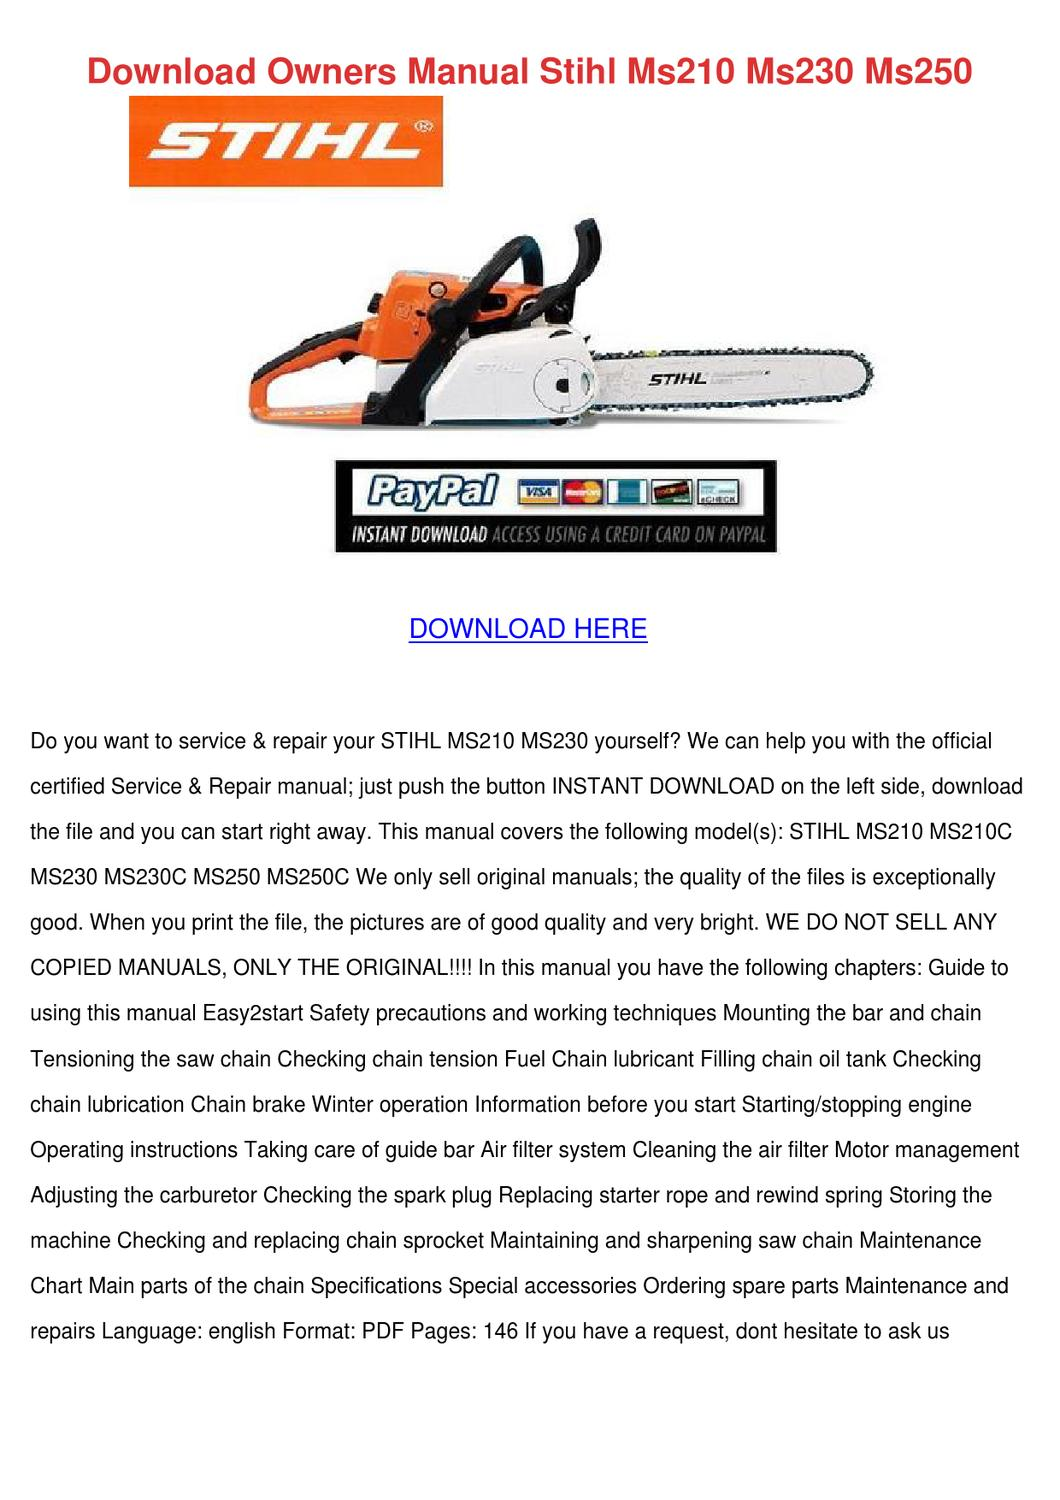 Download Owners Manual Stihl Ms210 Ms230 Ms25 by Buena